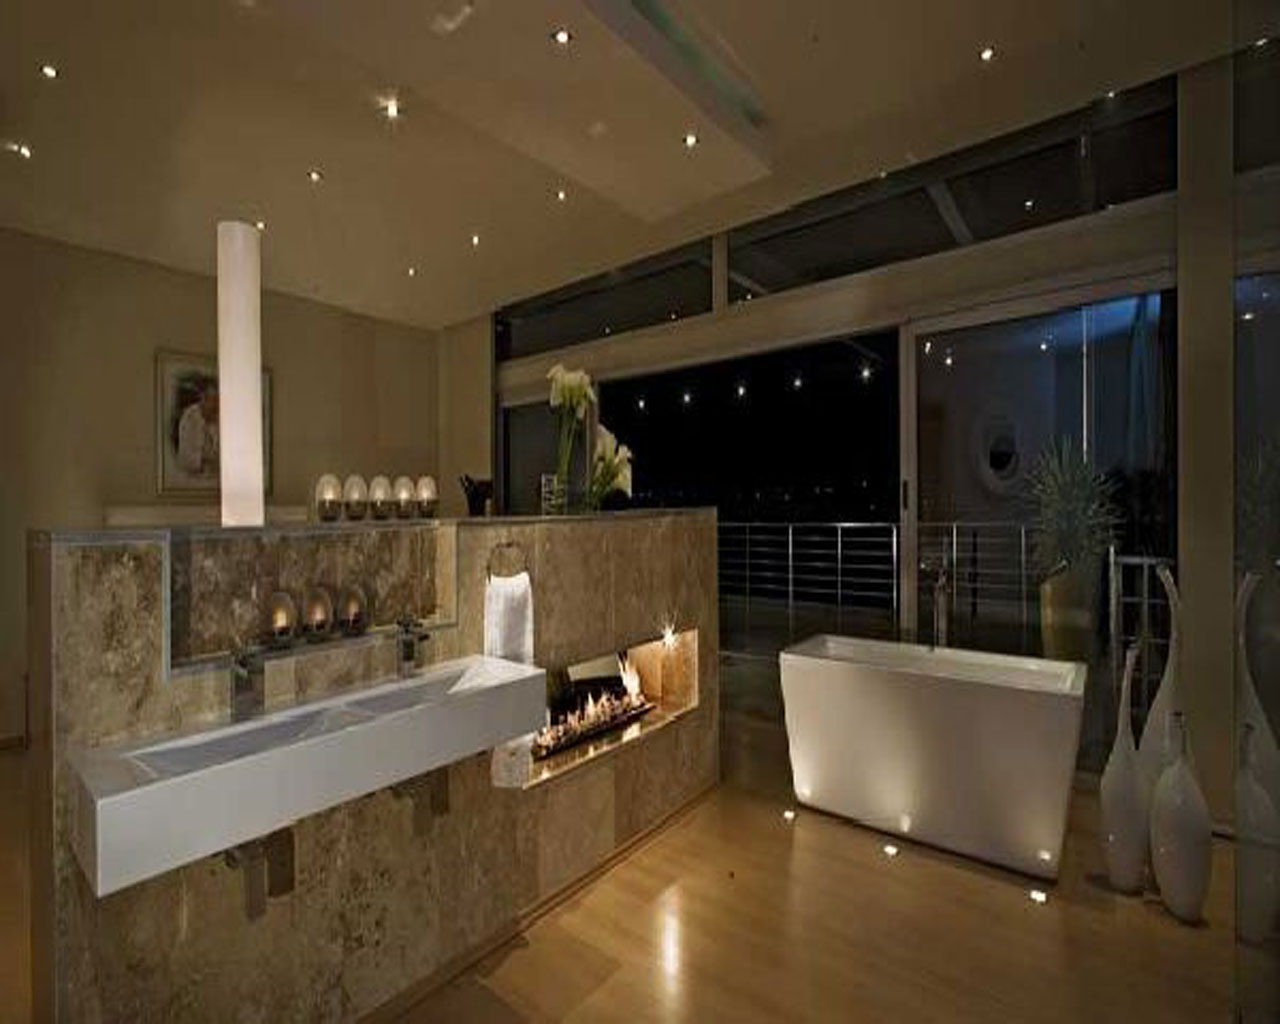 25 must see modern bathroom designs for 2014 qnud for Modern small bathroom designs 2013